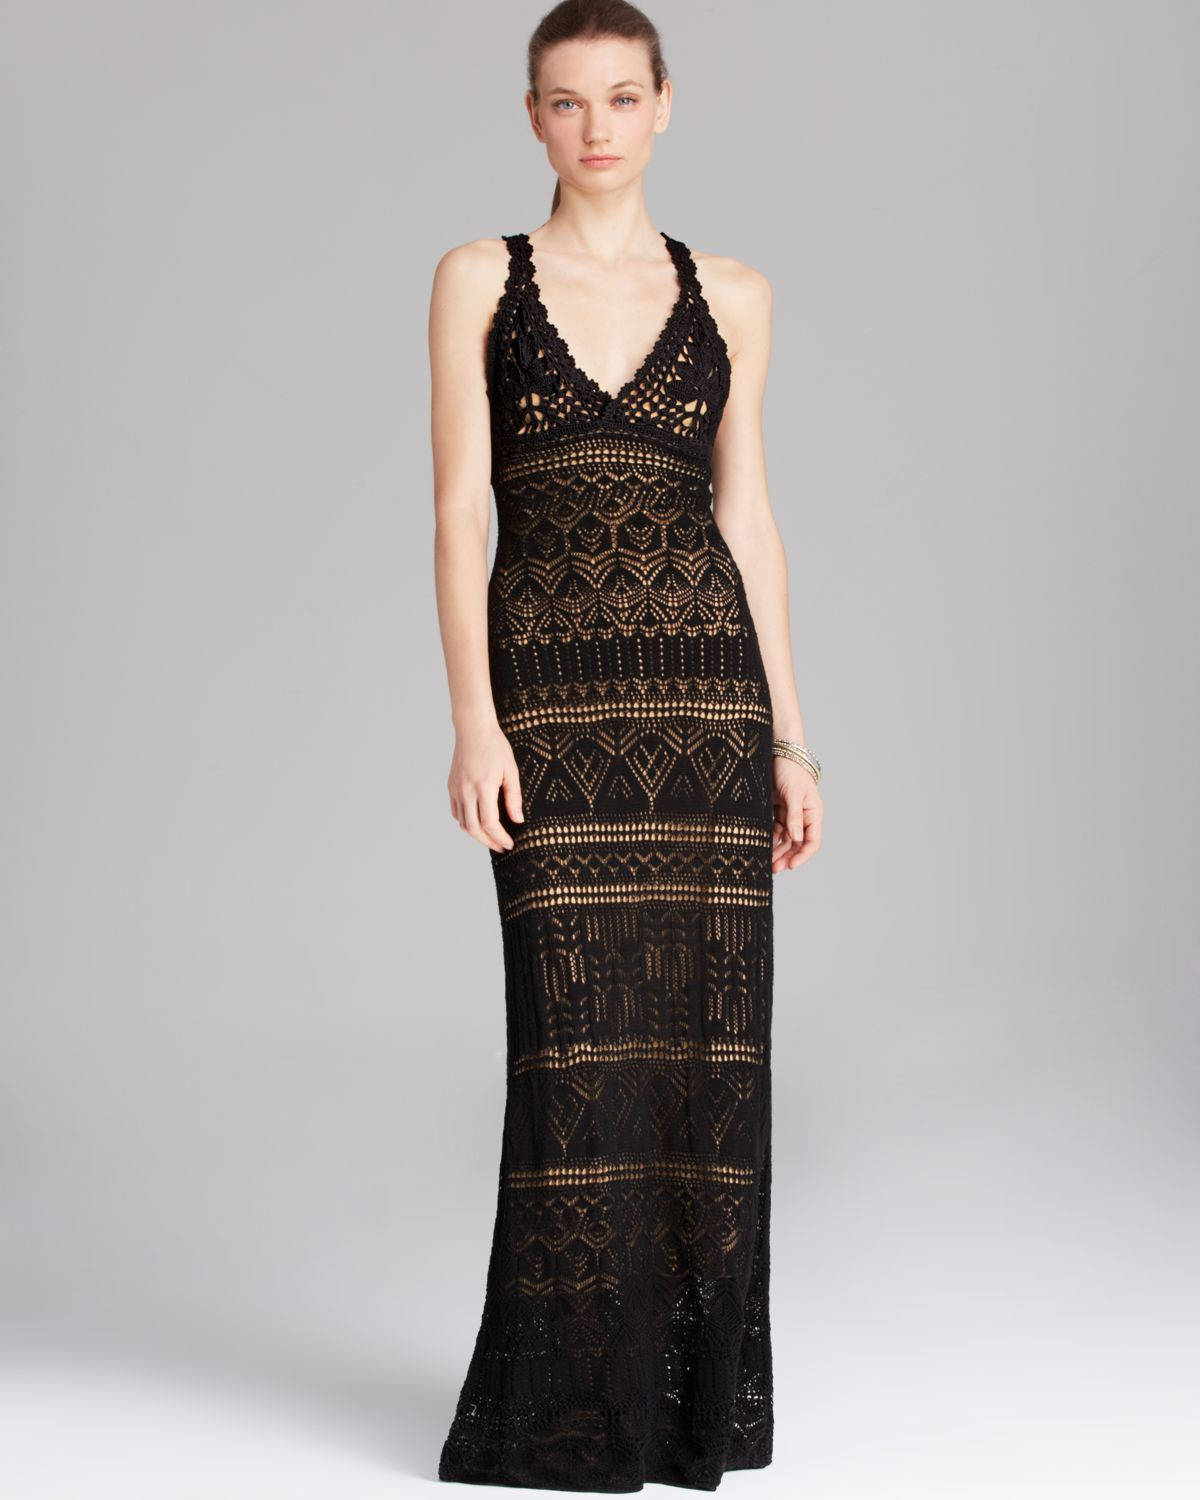 Crochet Maxi Dress : vince-camuto-black-crochet-maxi-dress-maxi-dresses-product-1-20588066 ...